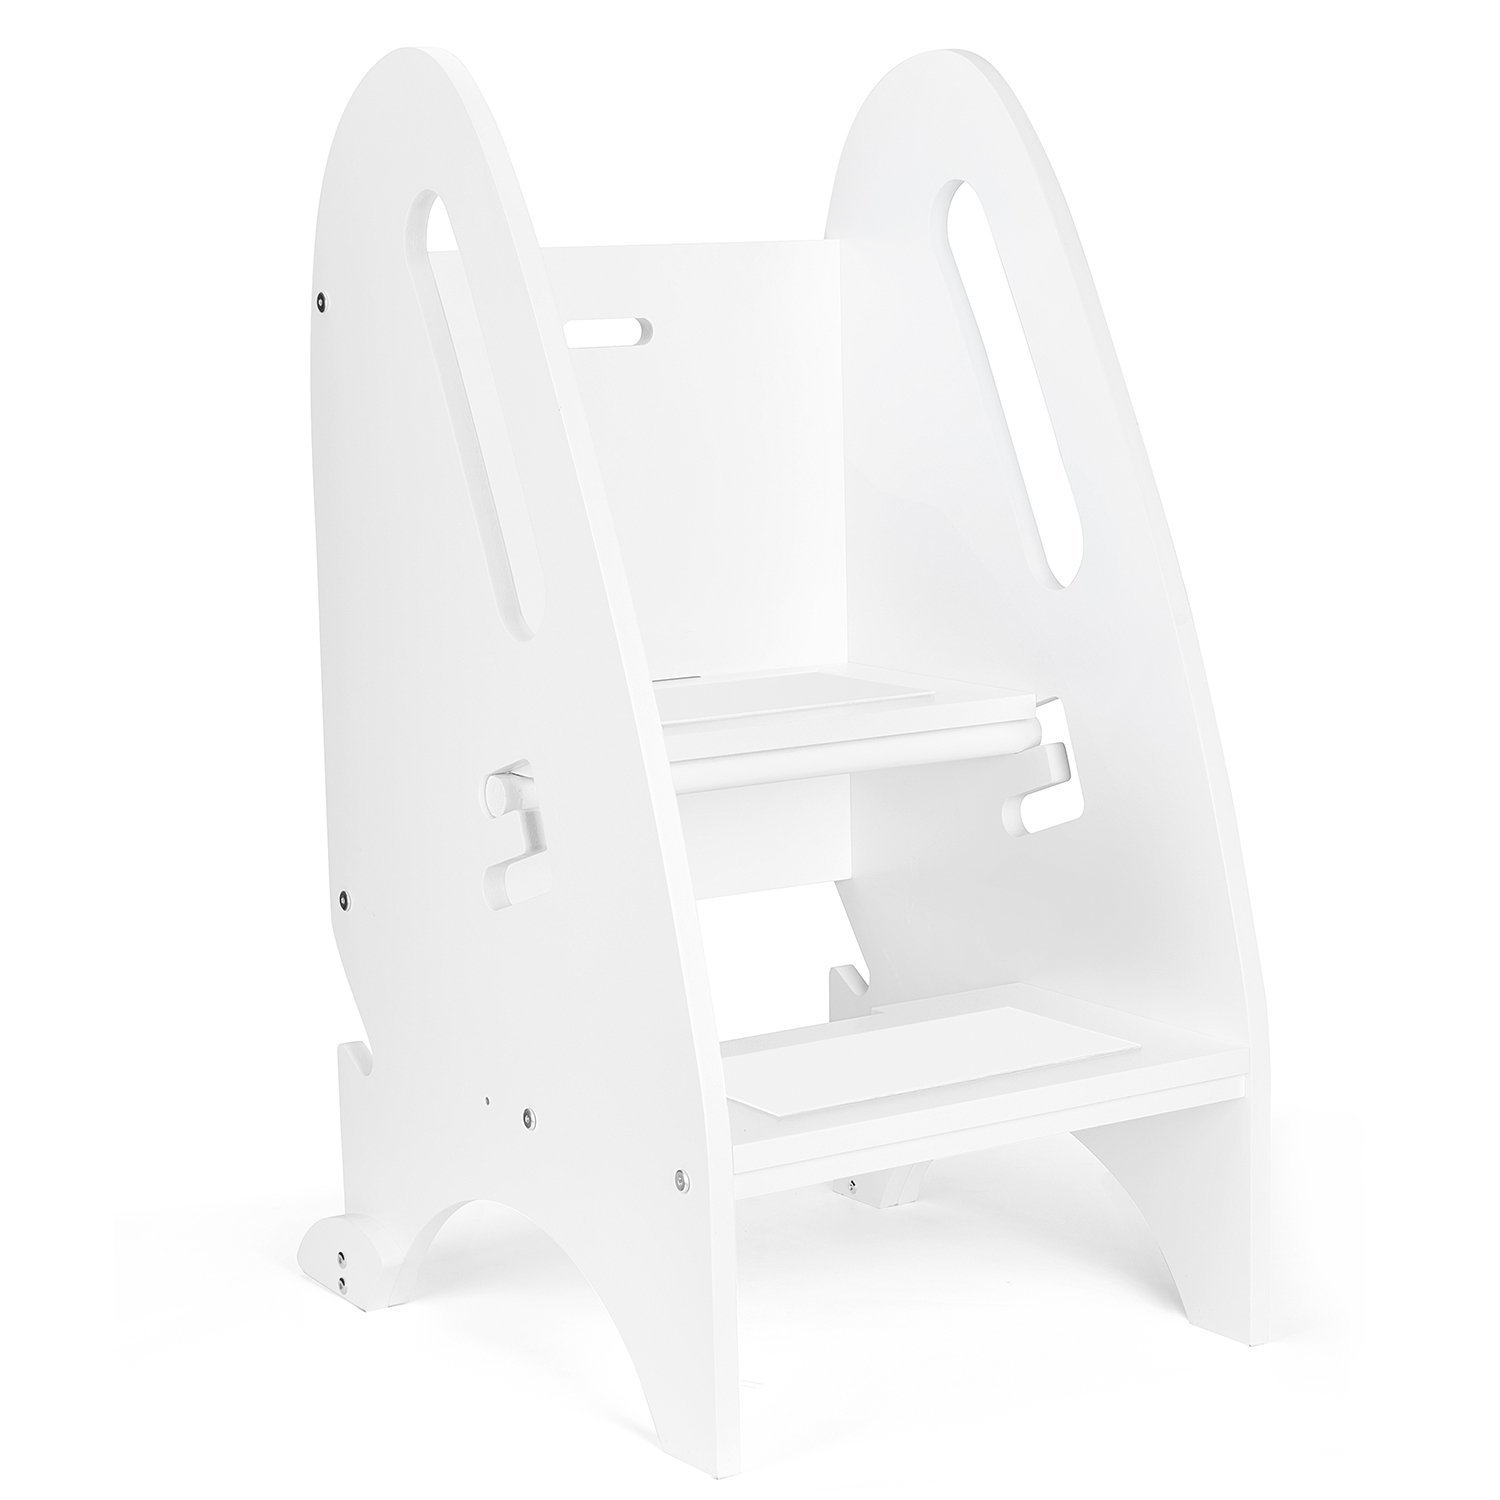 Acko Wooden Step Stool with Non- Slip Great for Both Toddlers & Adults–Perfect Height for Nursery, Kitchen or Bathroom.Holds Up To 264LBS (White Color)